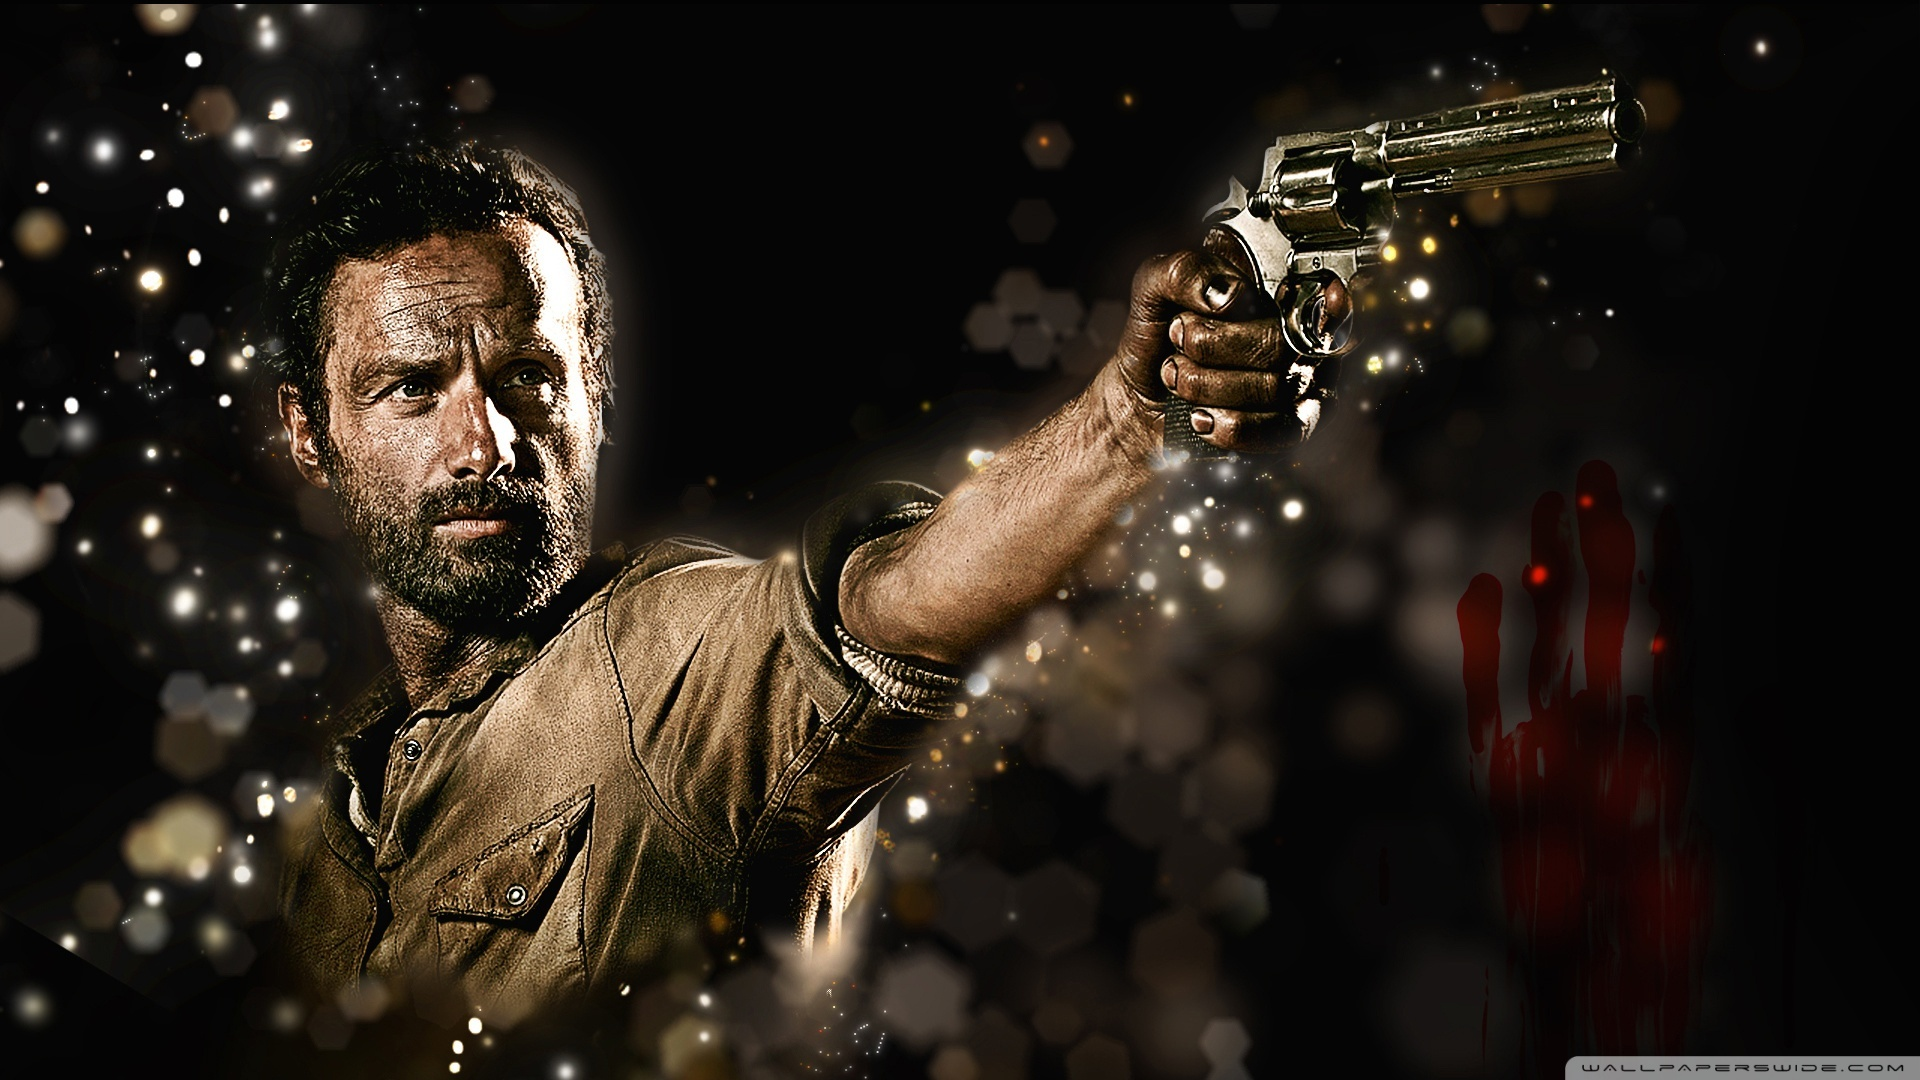 wallpaper de the walking dead full hd im225genes taringa